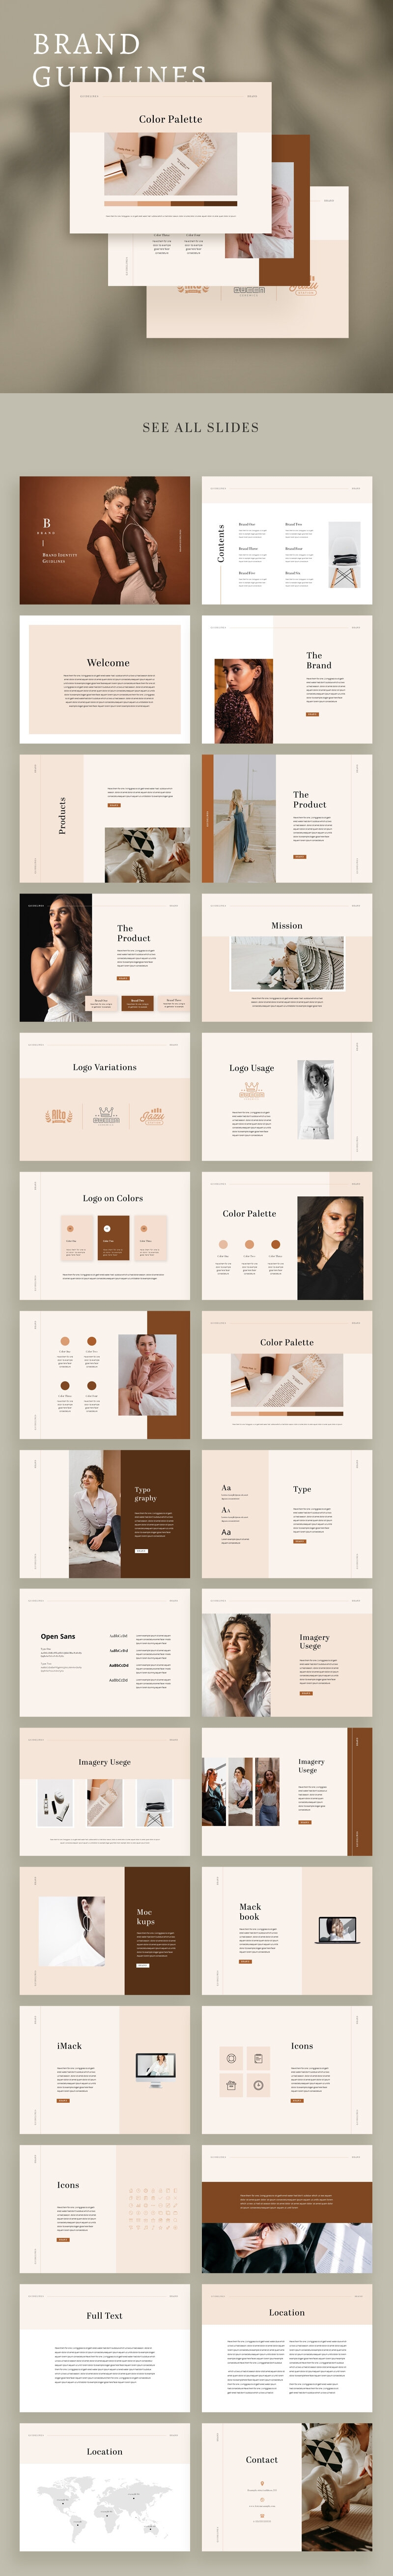 Brand Guidelines Powerpoint